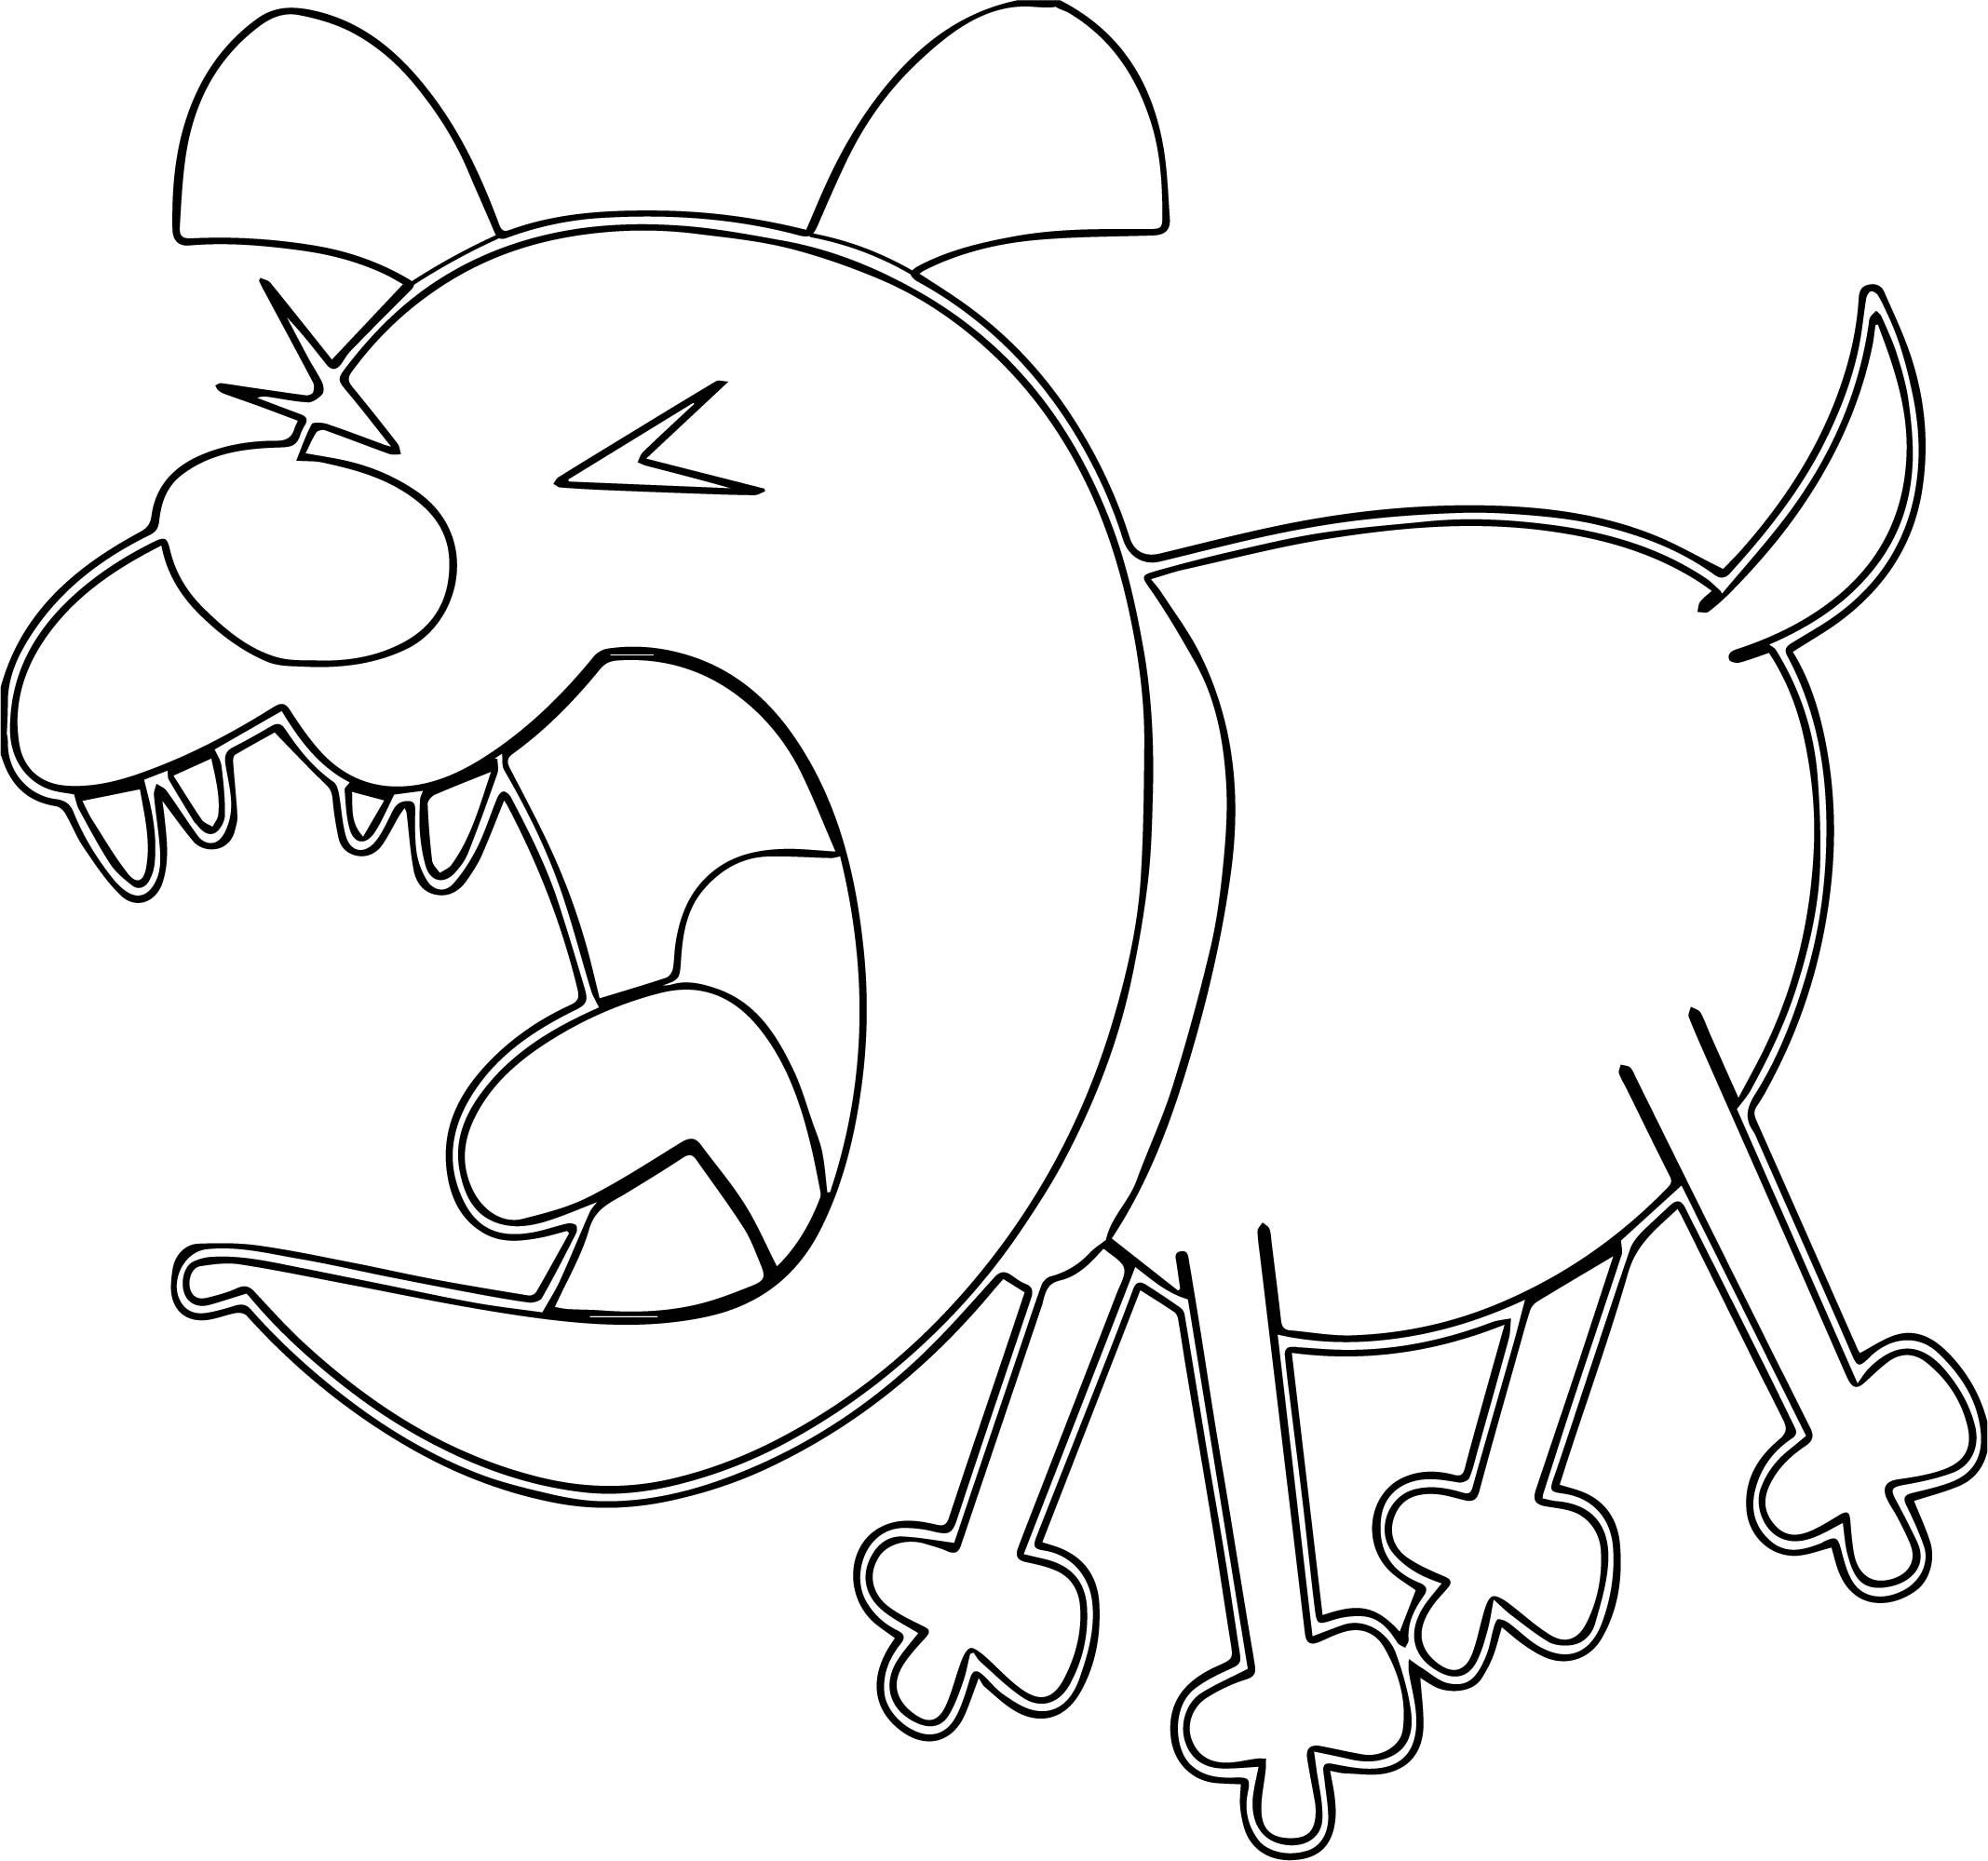 Outline Dog Bark Coloring Page